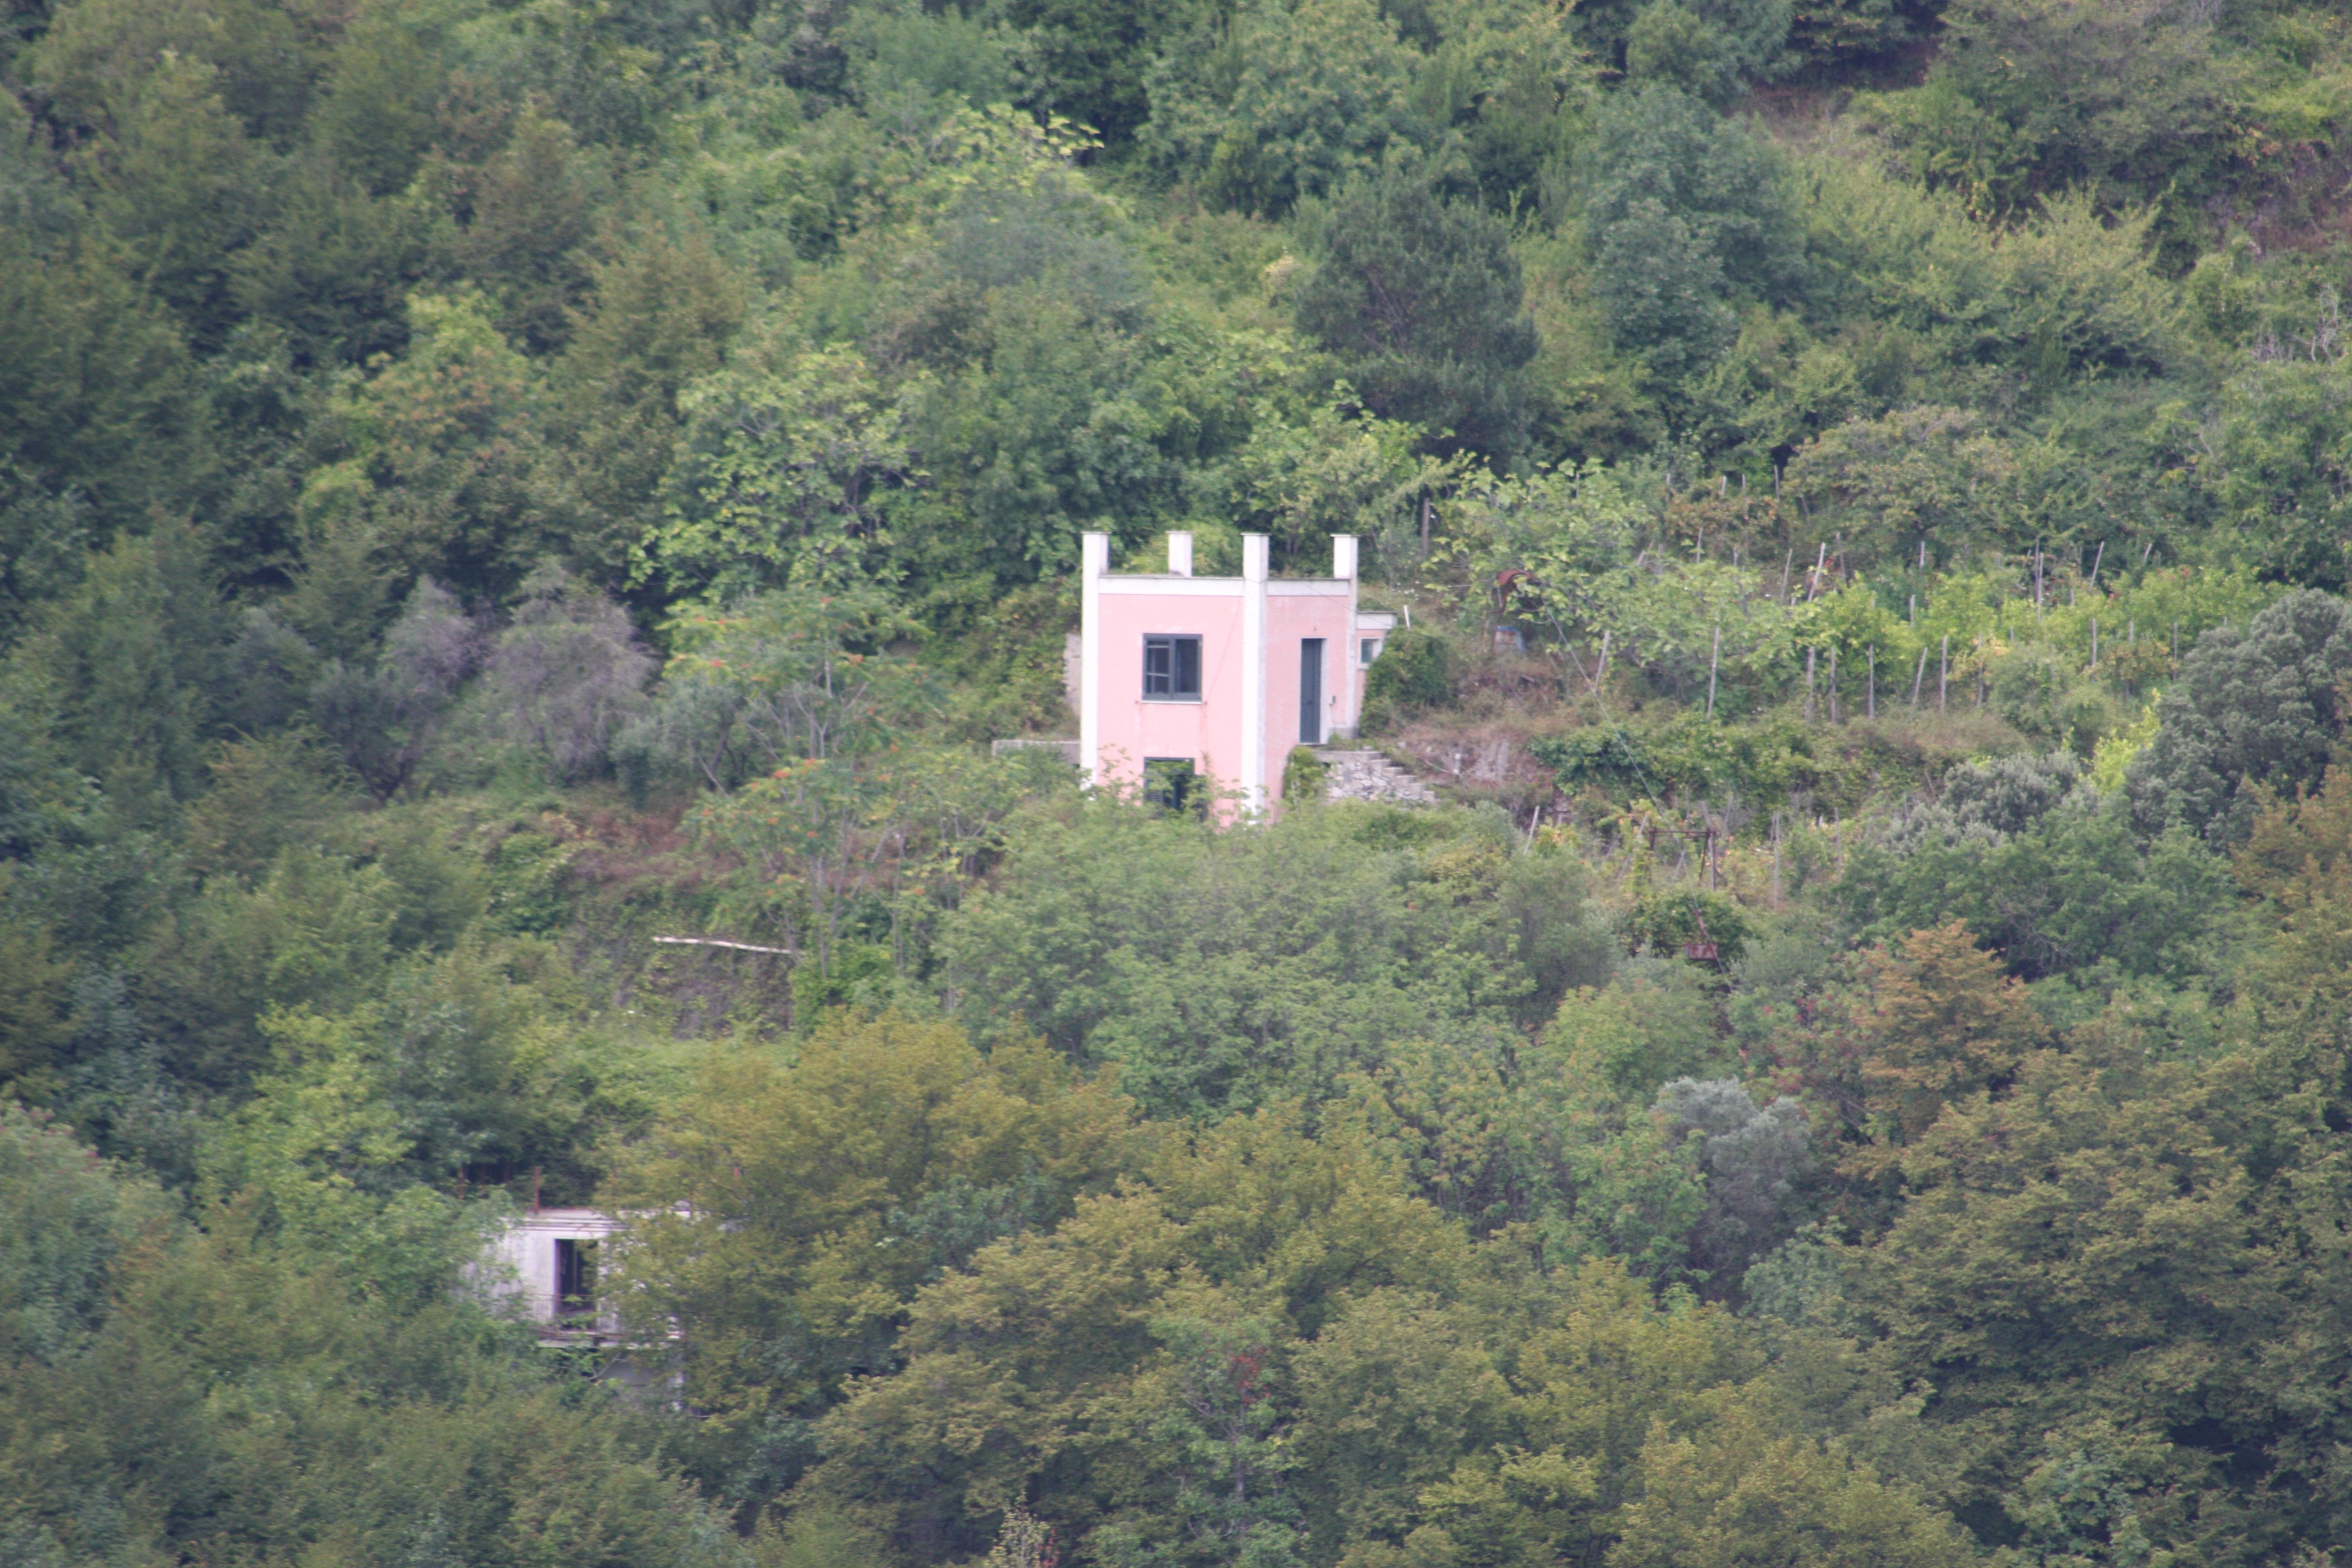 A small building nested on a hill surrounded by trees